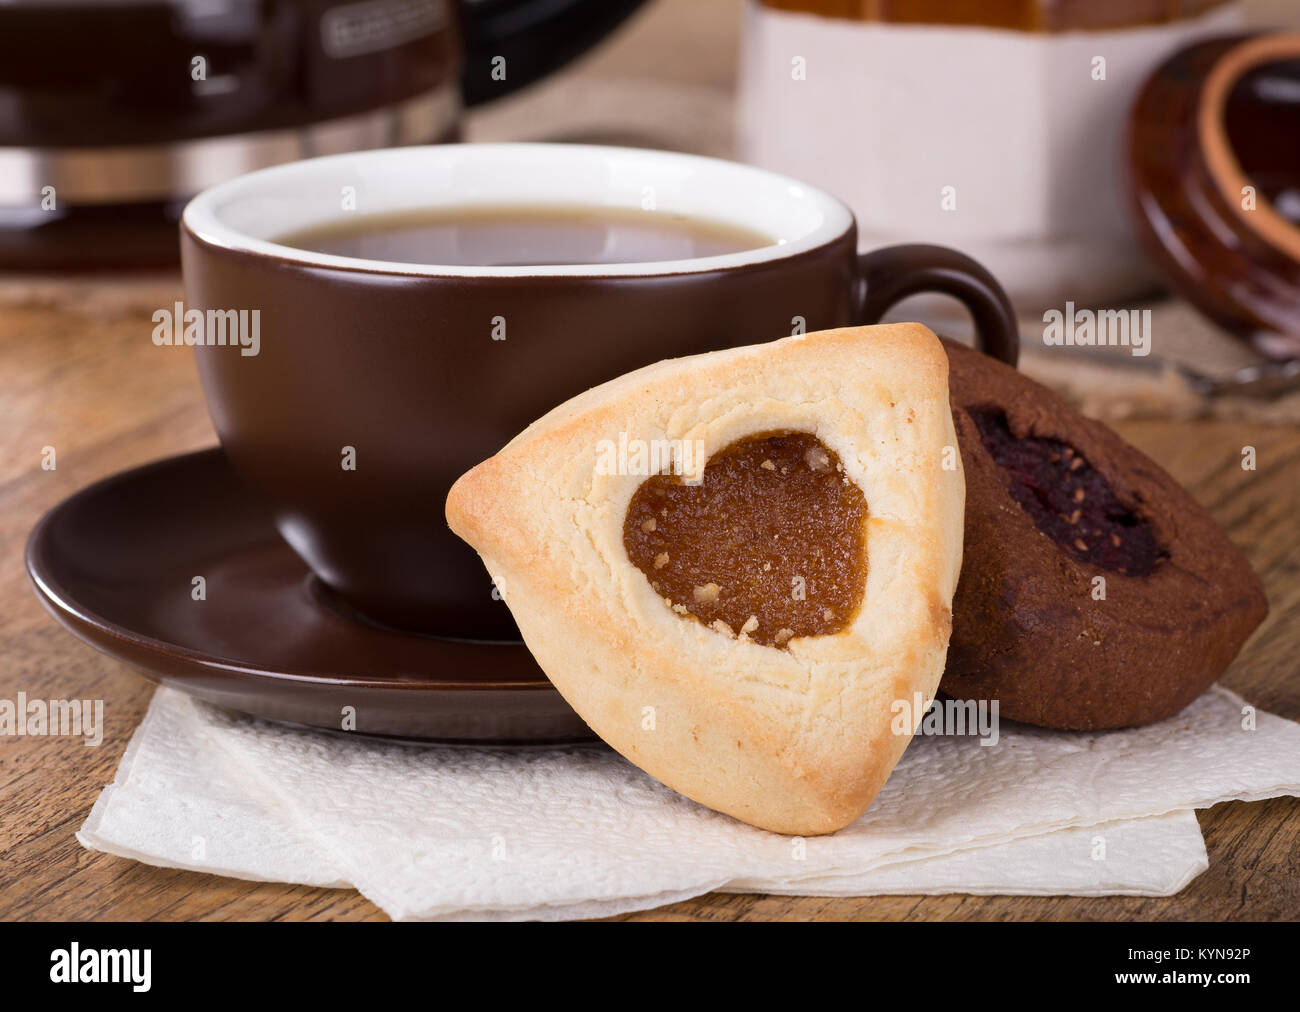 Closeup of an apricot filled hamantash cookie and cup of coffee - Stock Image